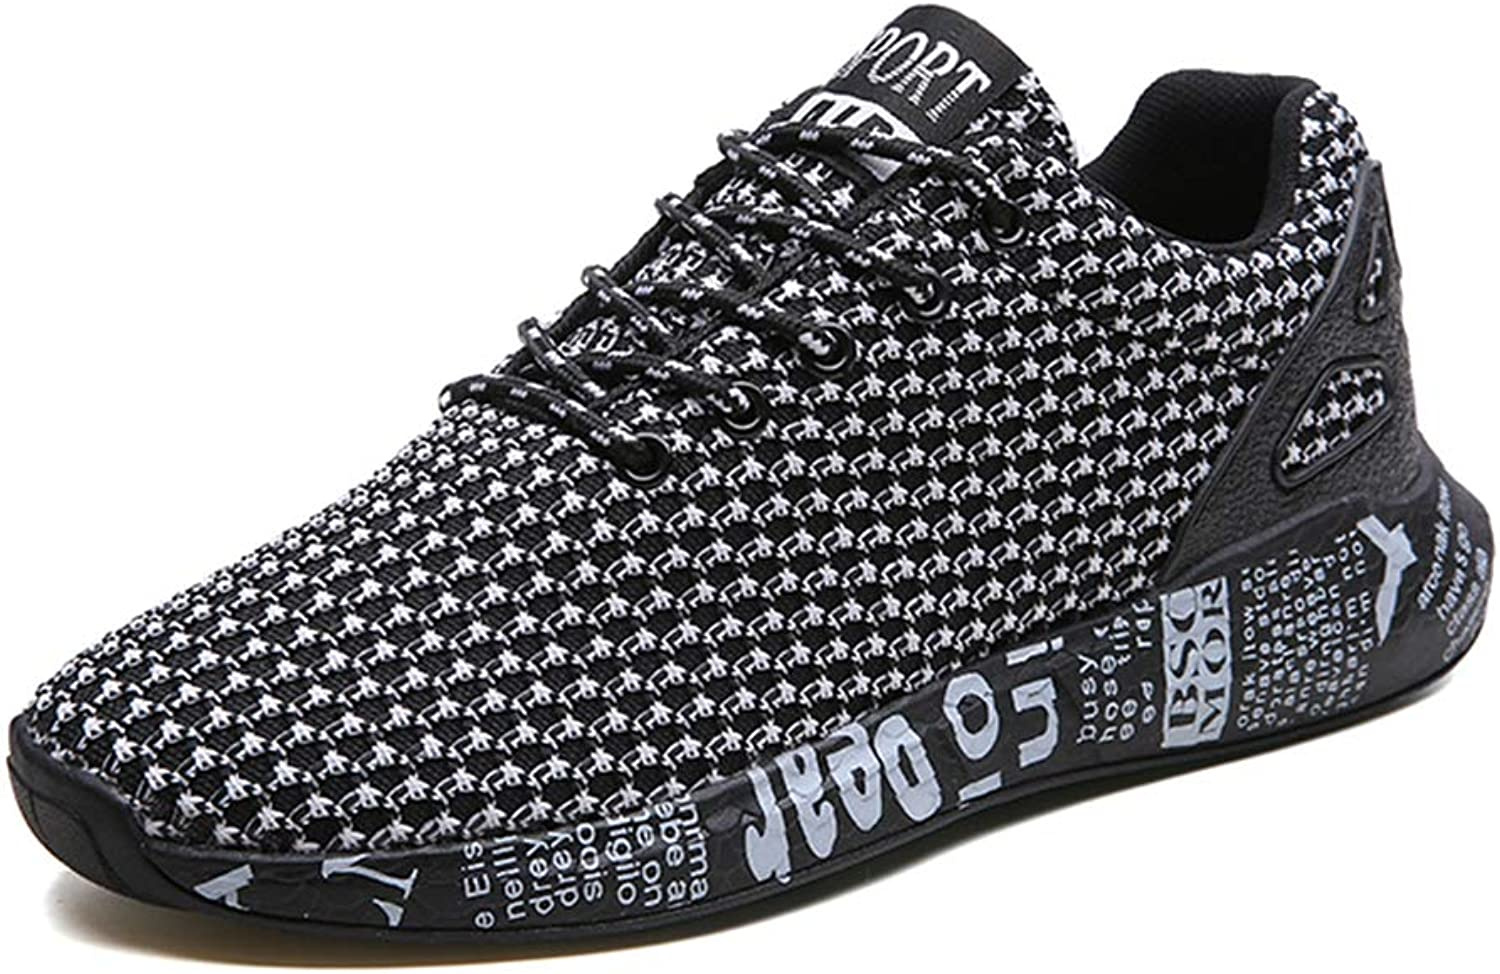 Running shoes, Men Sports Sneakers, Fitness Breathable Mesh Running Low Trekking Lightweight Casual Summer Outdoor